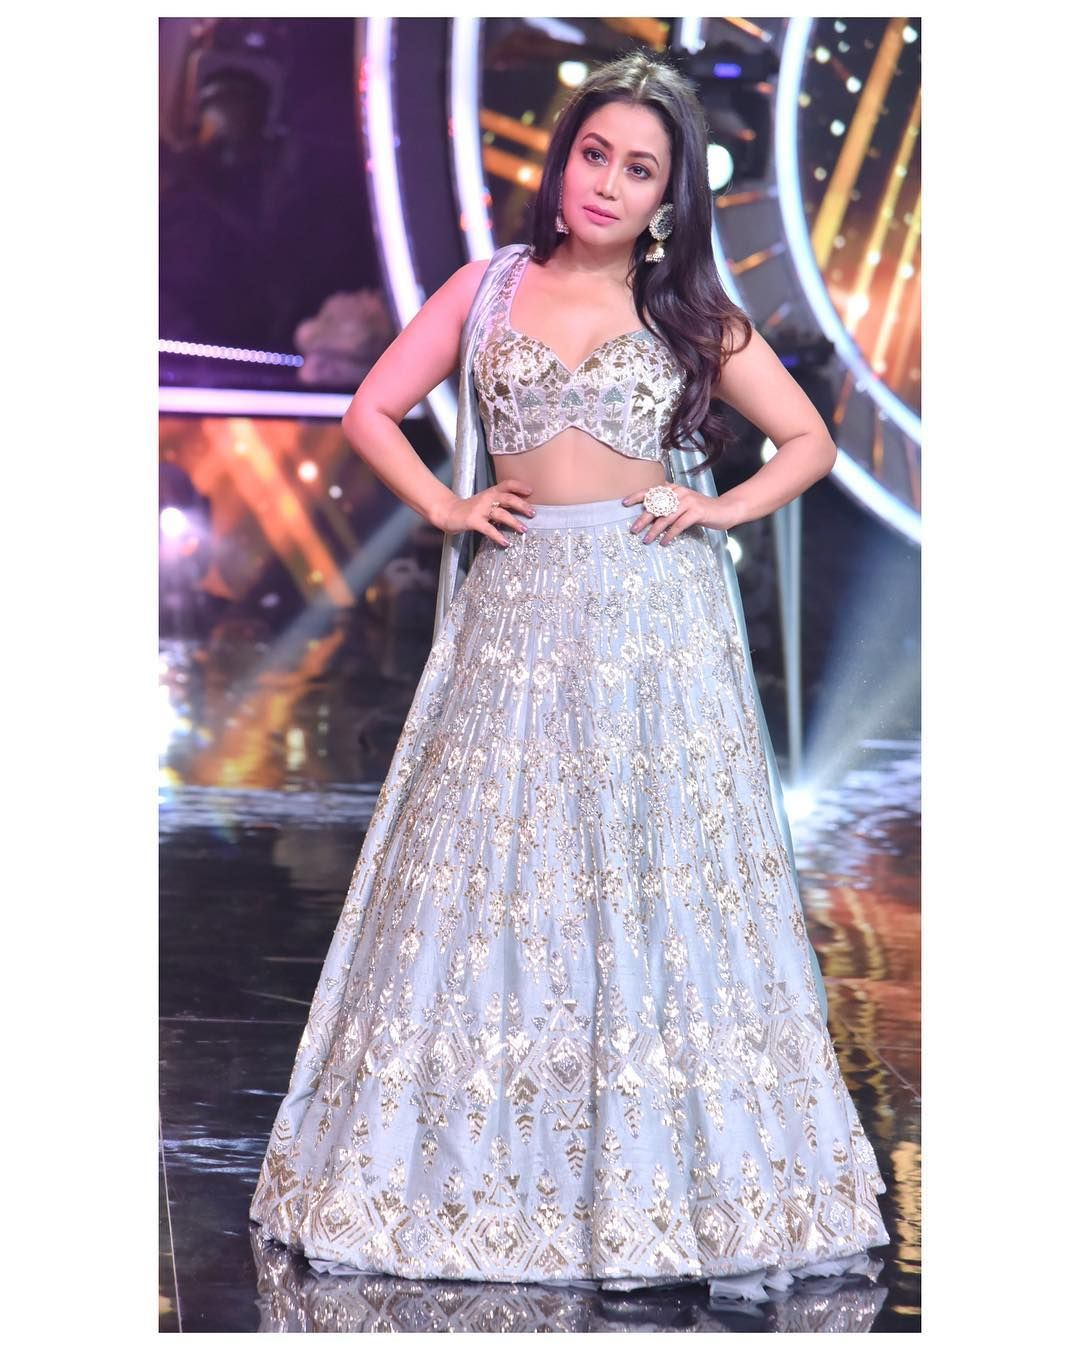 Image May Contain 1 Person Standing Neha Kakkar Dresses Bollywood Outfits Indian Wedding Wear